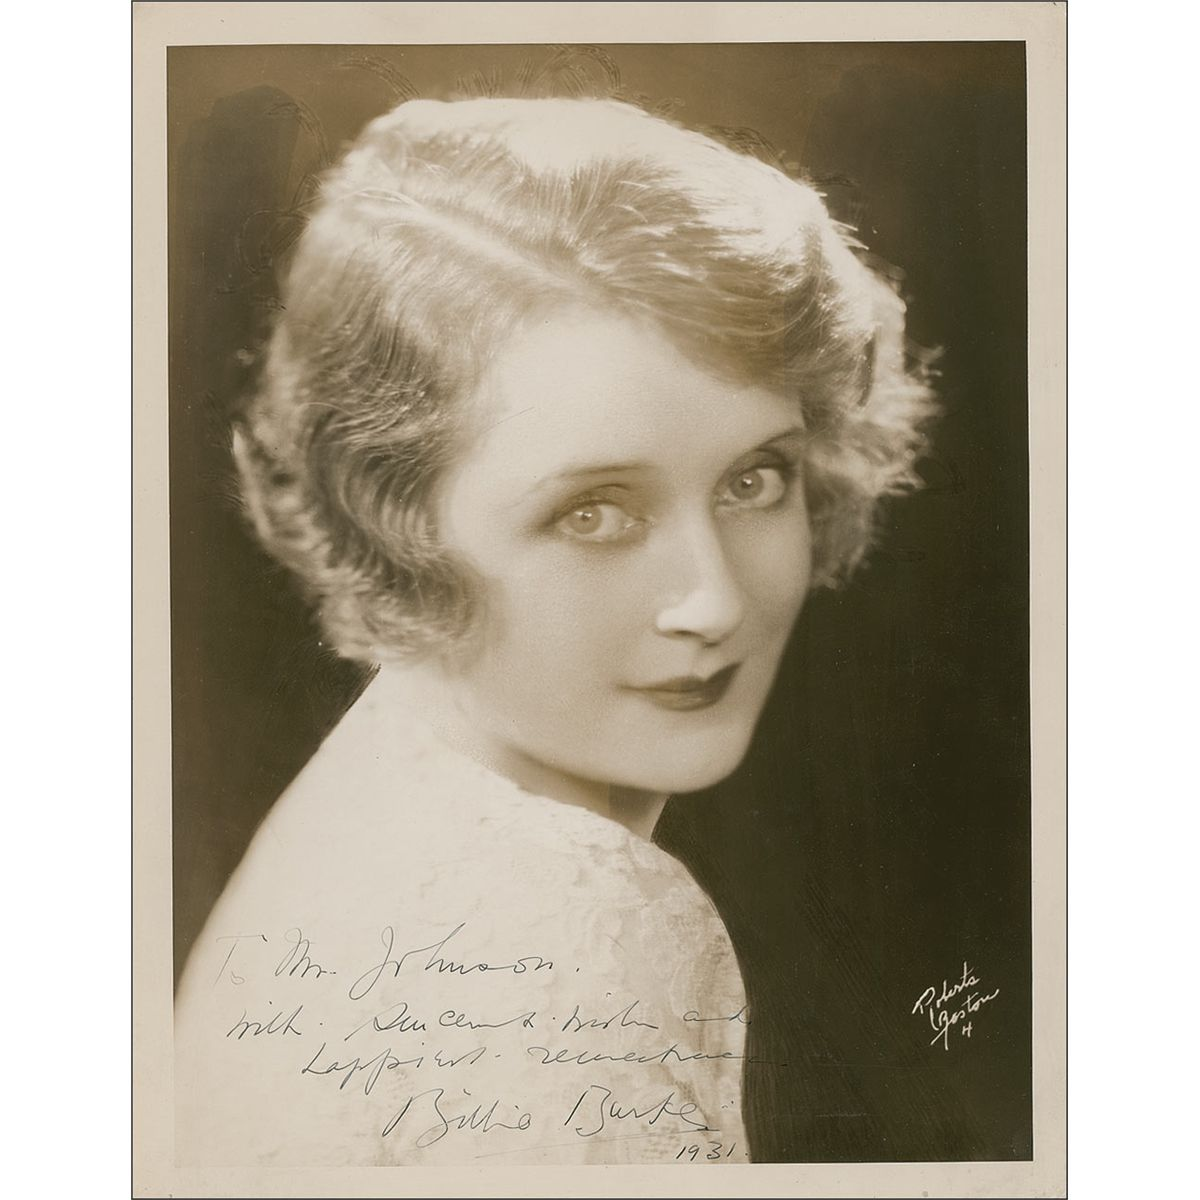 Billie Burke Billie Burke new pictures